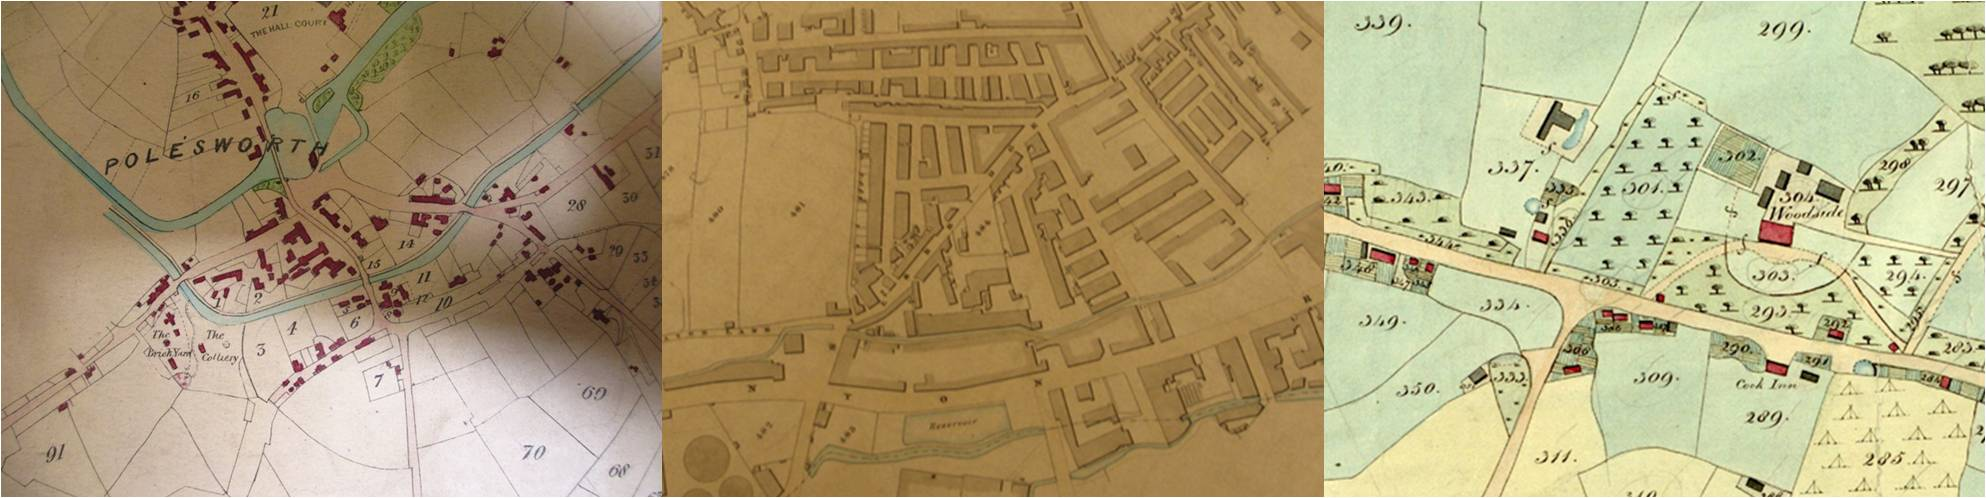 Details from three very different tithe maps. Left: Polesworth, Warwickshire (catalogue reference IR 30/36/114); centre: Bradford, Yorkshire (catalogue reference IR 30/43/60); right: Barnham, Sussex (catalogue reference IR 30/35/20).